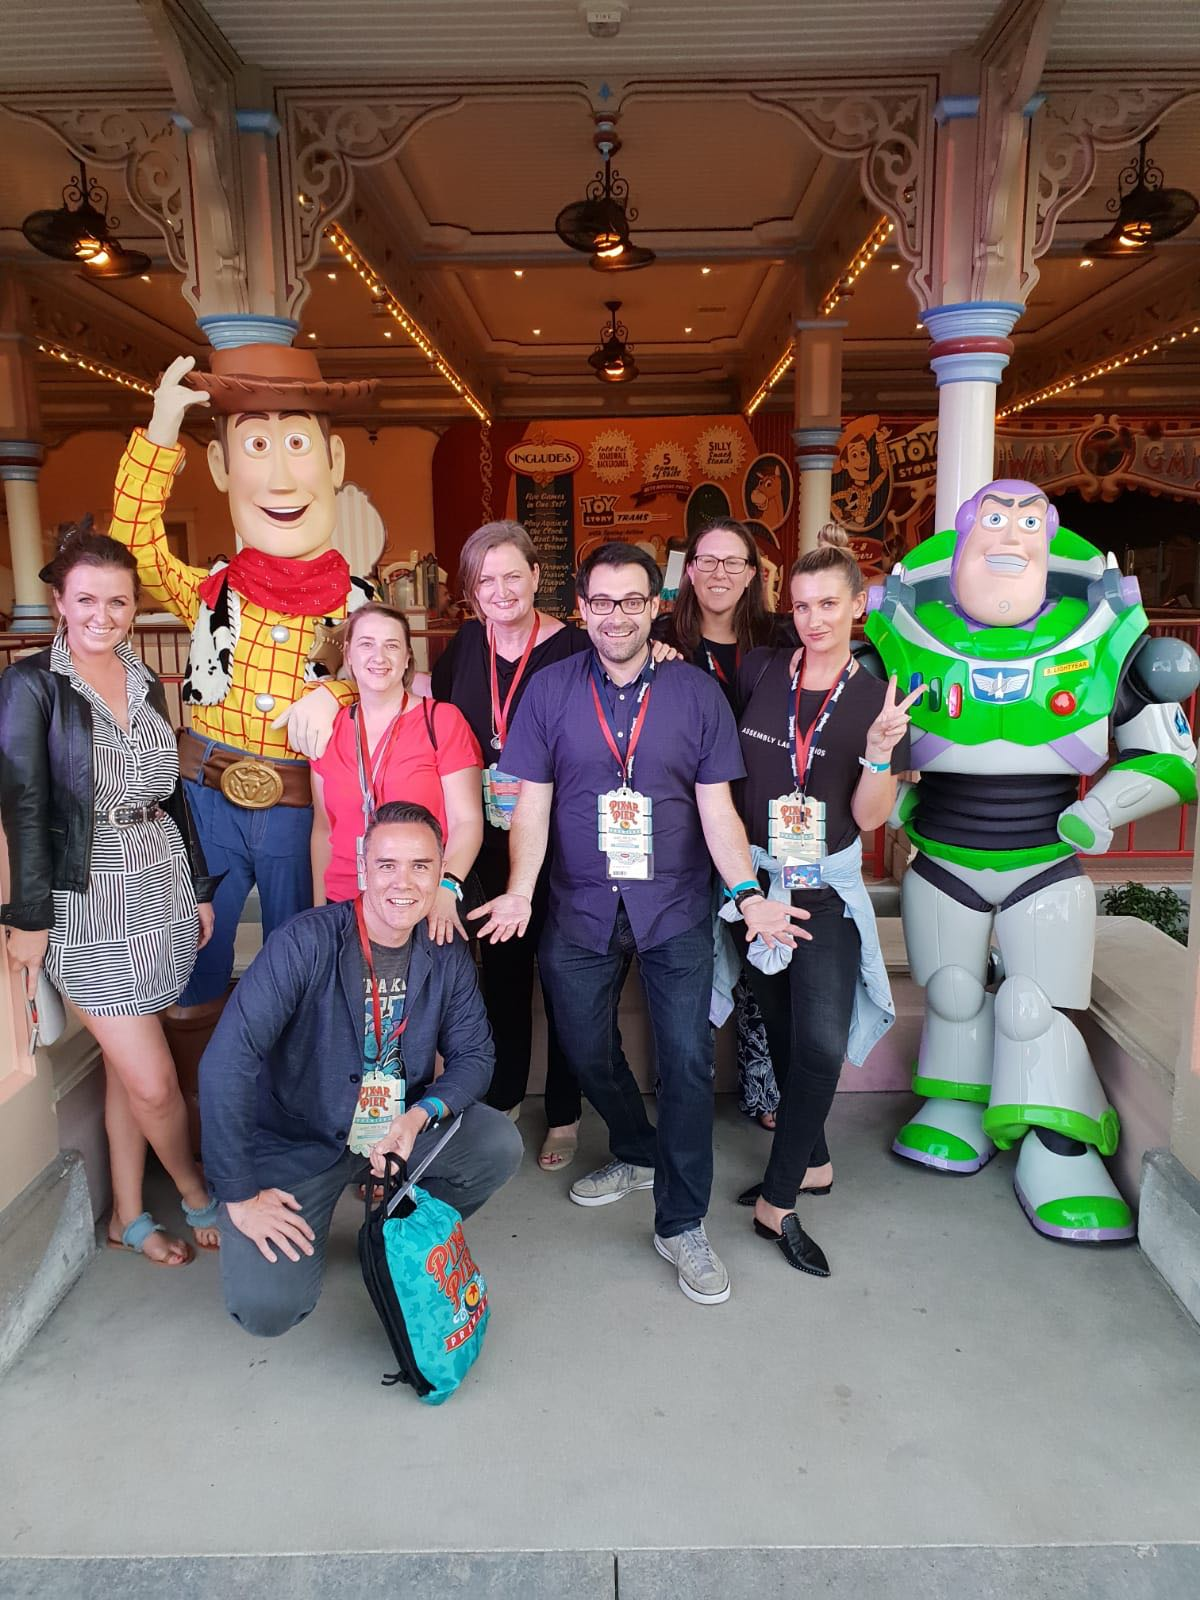 Pictured (left to right) with Woody and Buzz in Pixar Pier: Laura Masters (helloworld Travel), Adam Townson (Travel Associates), Monica Lando (Infinity Holidays), Christie Hopp (Infinity Holidays), Michael Cassis (Disney Destinations), Sarah Gerrand (helloworld Travel Wholesale), Vanessa Richards (Excite Holidays). Absent from Picture: Julie Reid (United Airlines).